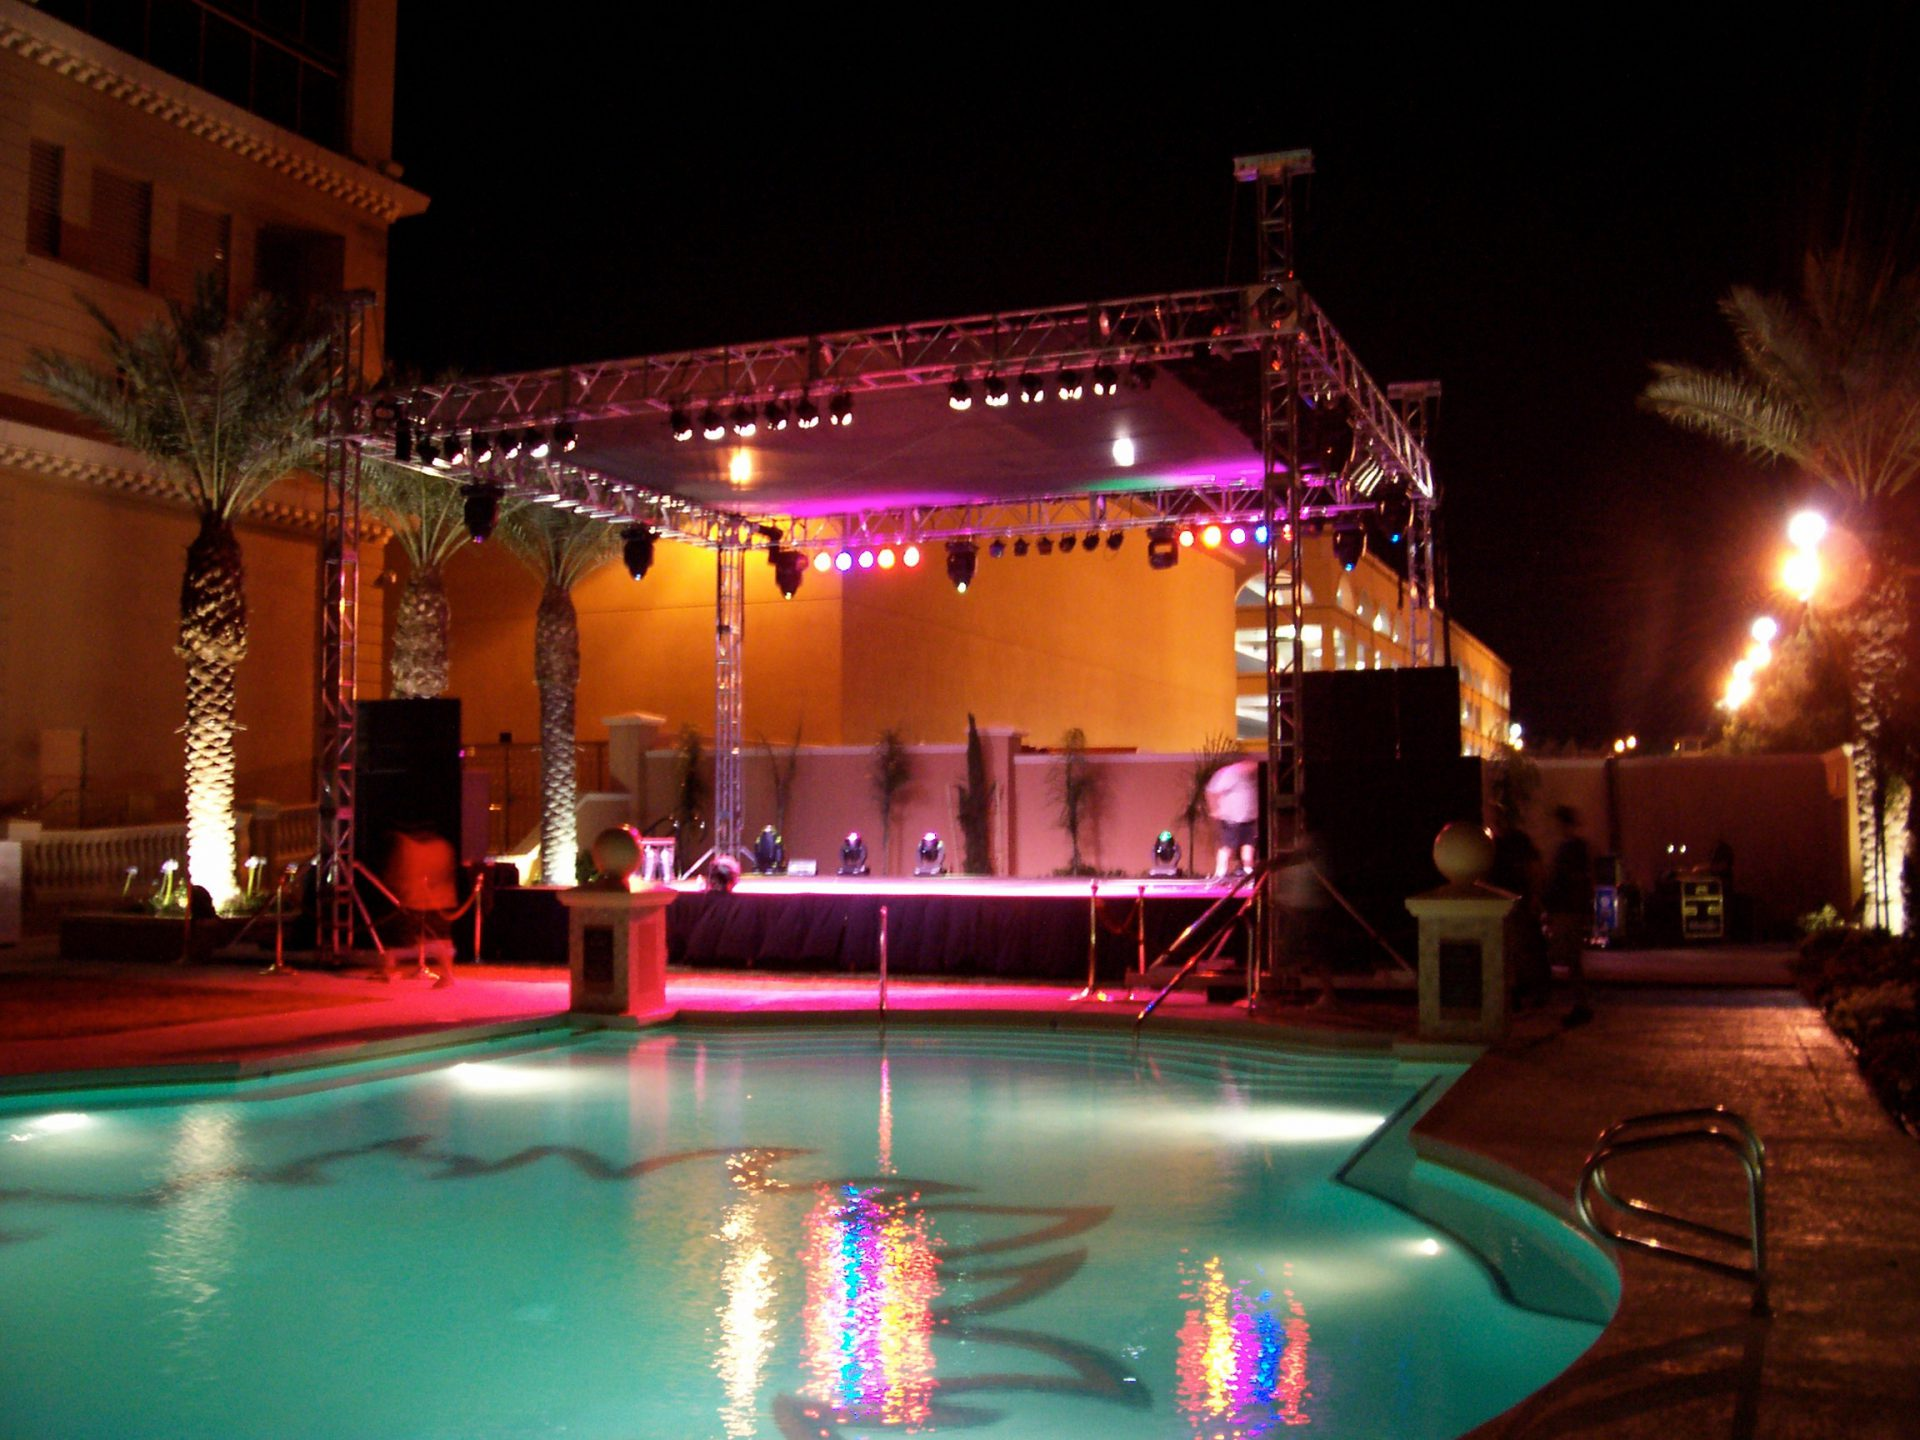 Beautiful lighted stage by a hotel swimming pool, ready for a concert